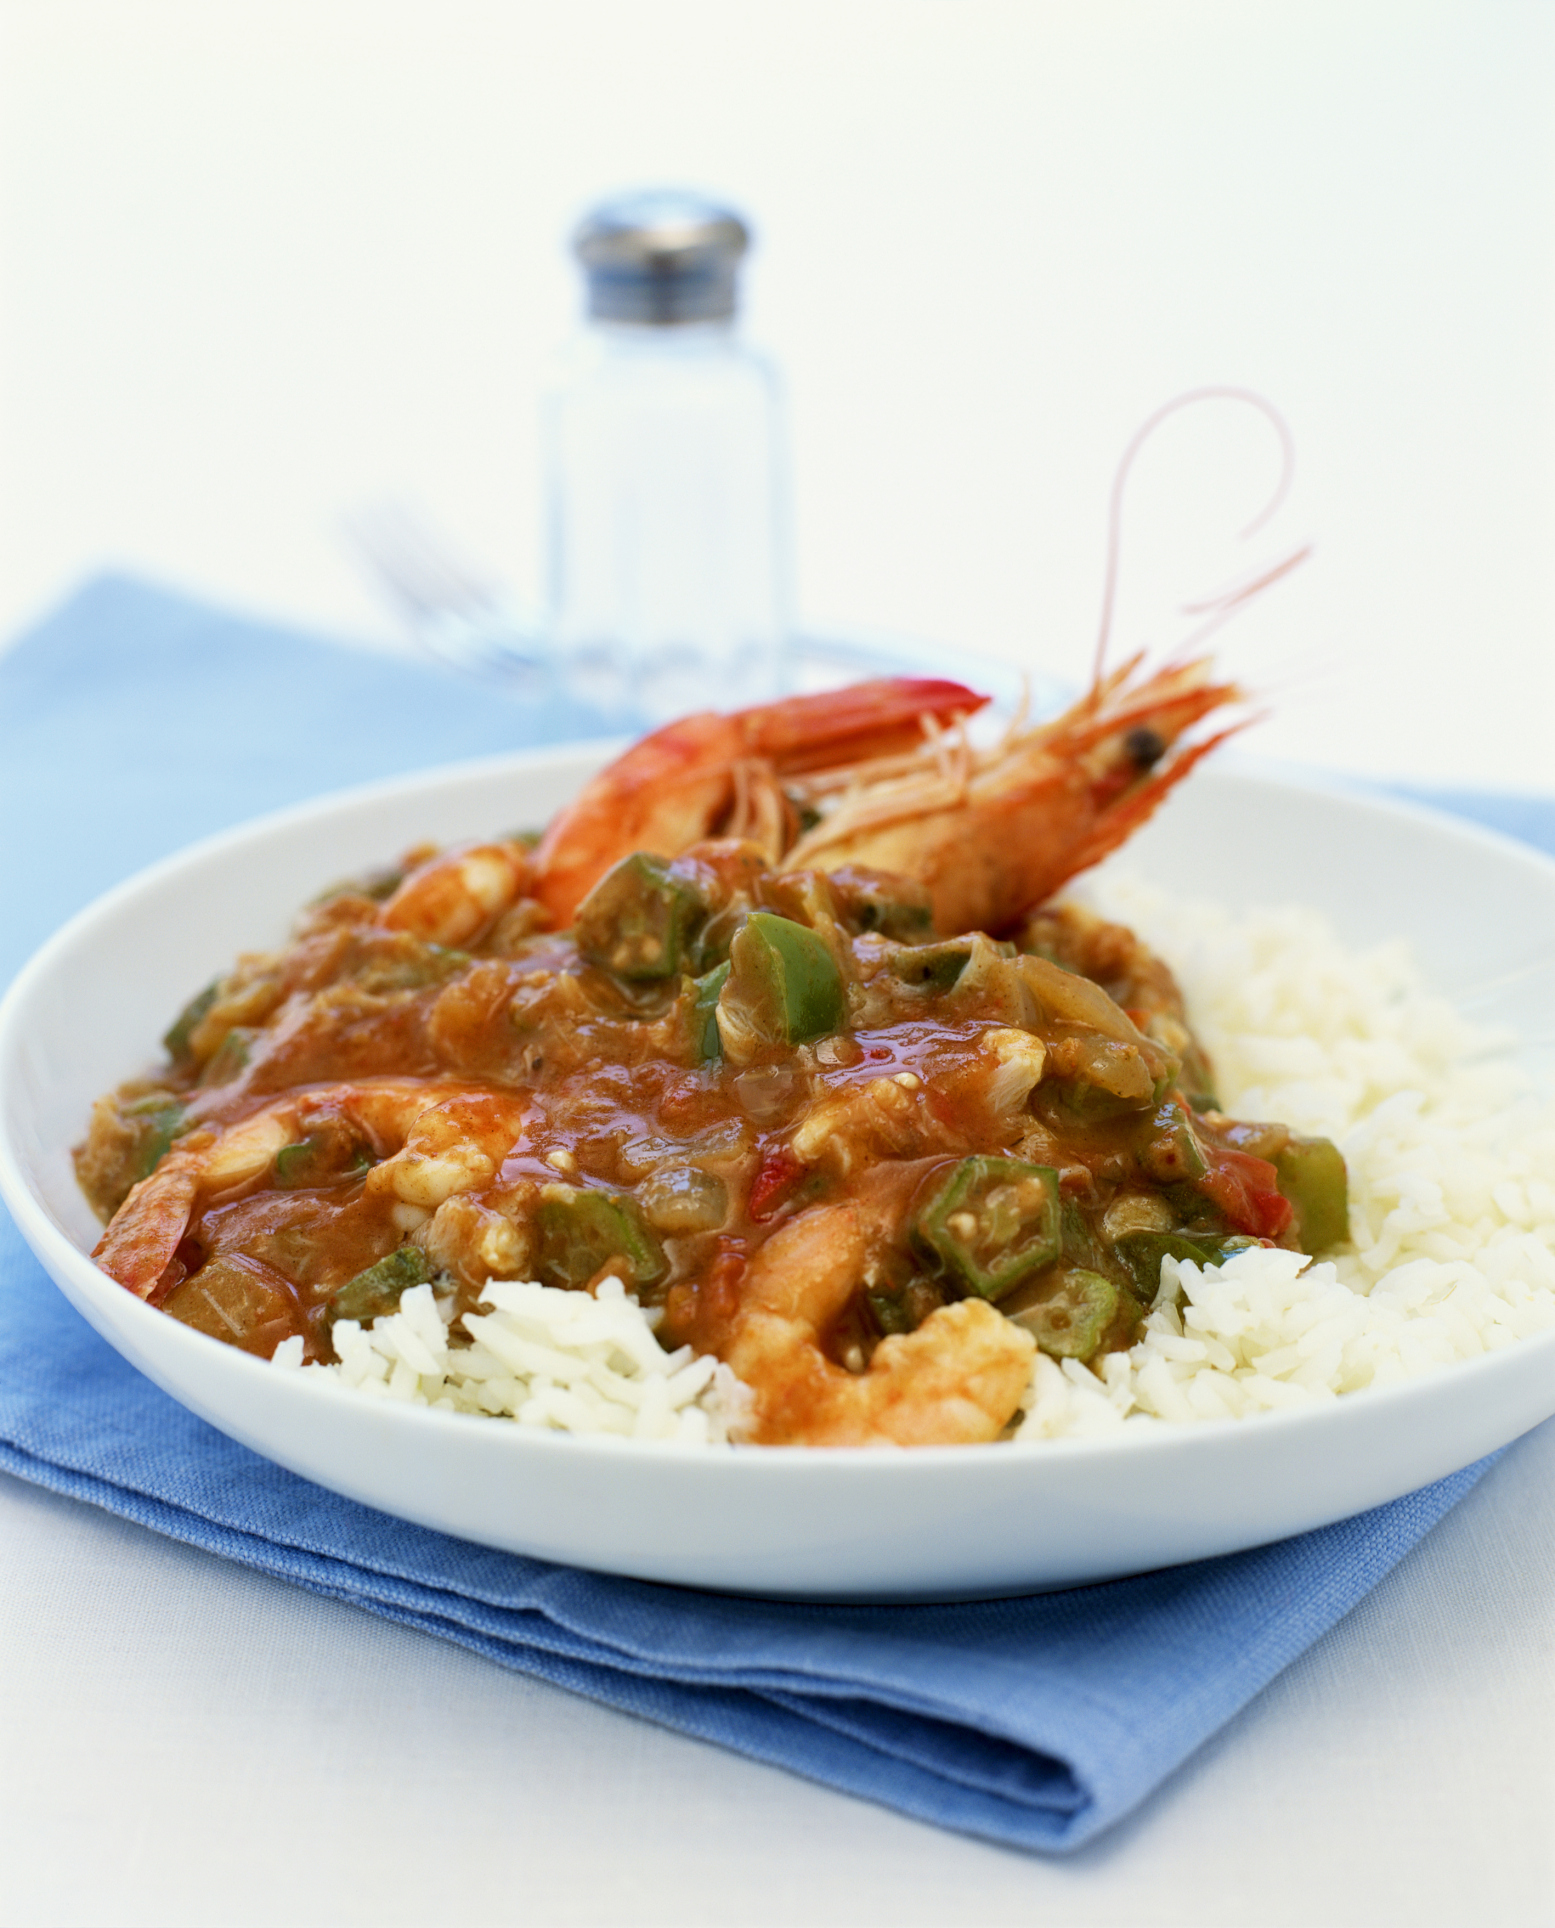 Cute How To Prevent Gumbo From Spoiling Does Rice Expire After A Year Does Rice Flour Expire nice food Does Rice Expire